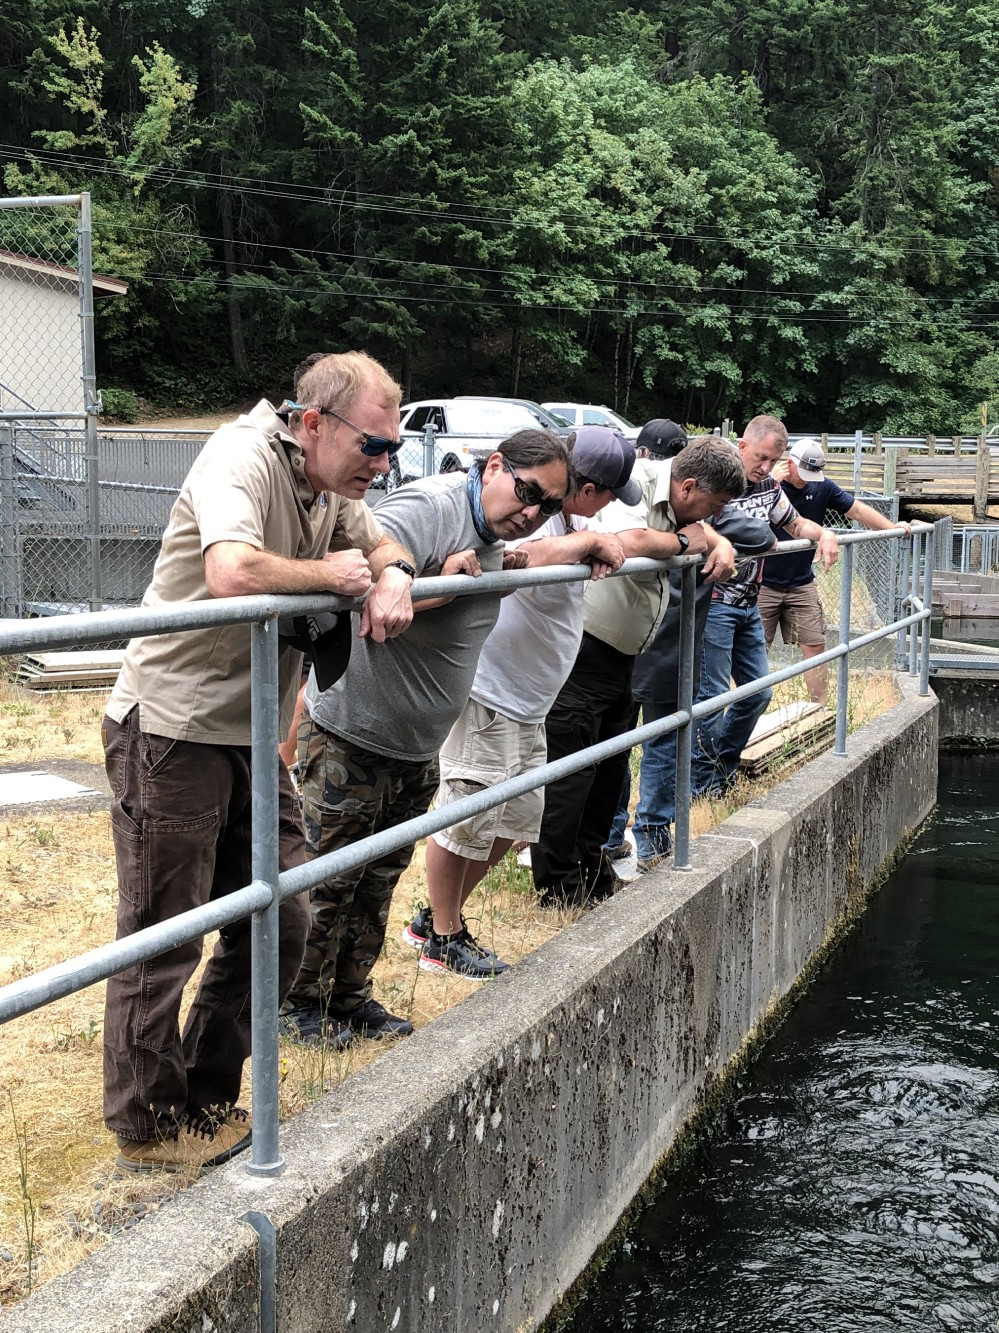 Members of Yakama Nation and U.S. Fish and Wildlife Service staff evaluate the fish ladder at Little White Salmon NFH. Photo by Cheri Anderson / USFWS